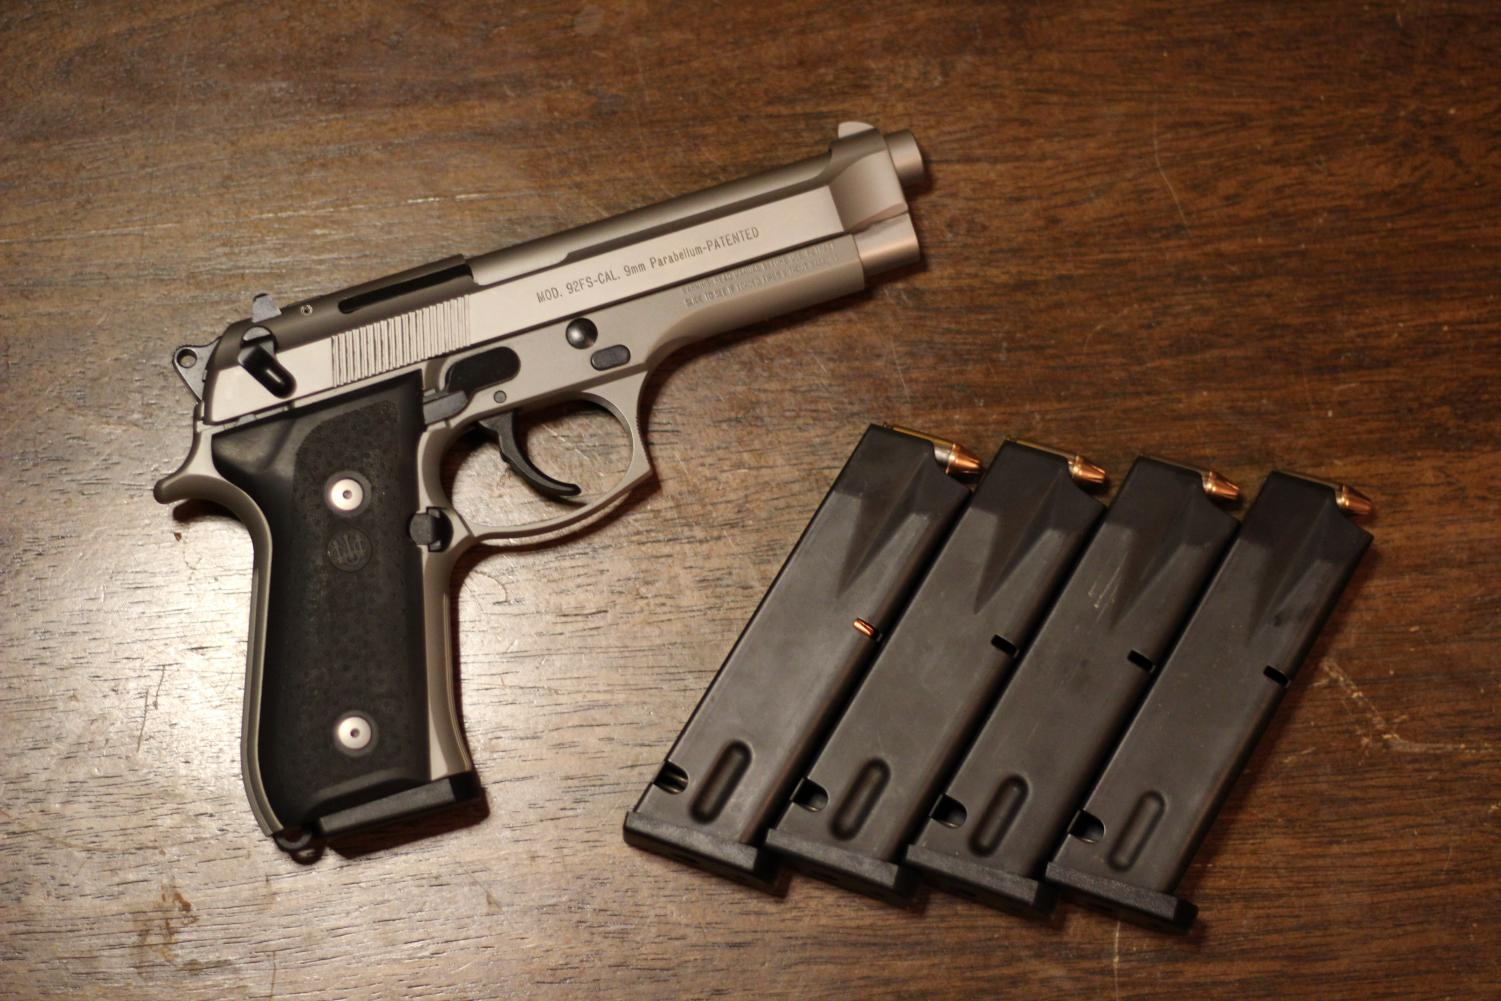 A Beretta 92FS handgun with four, 15 round magazines. The Alliance for Gun Responsibility would consider these magazines to be high-capacity, since they hold over 10 rounds.